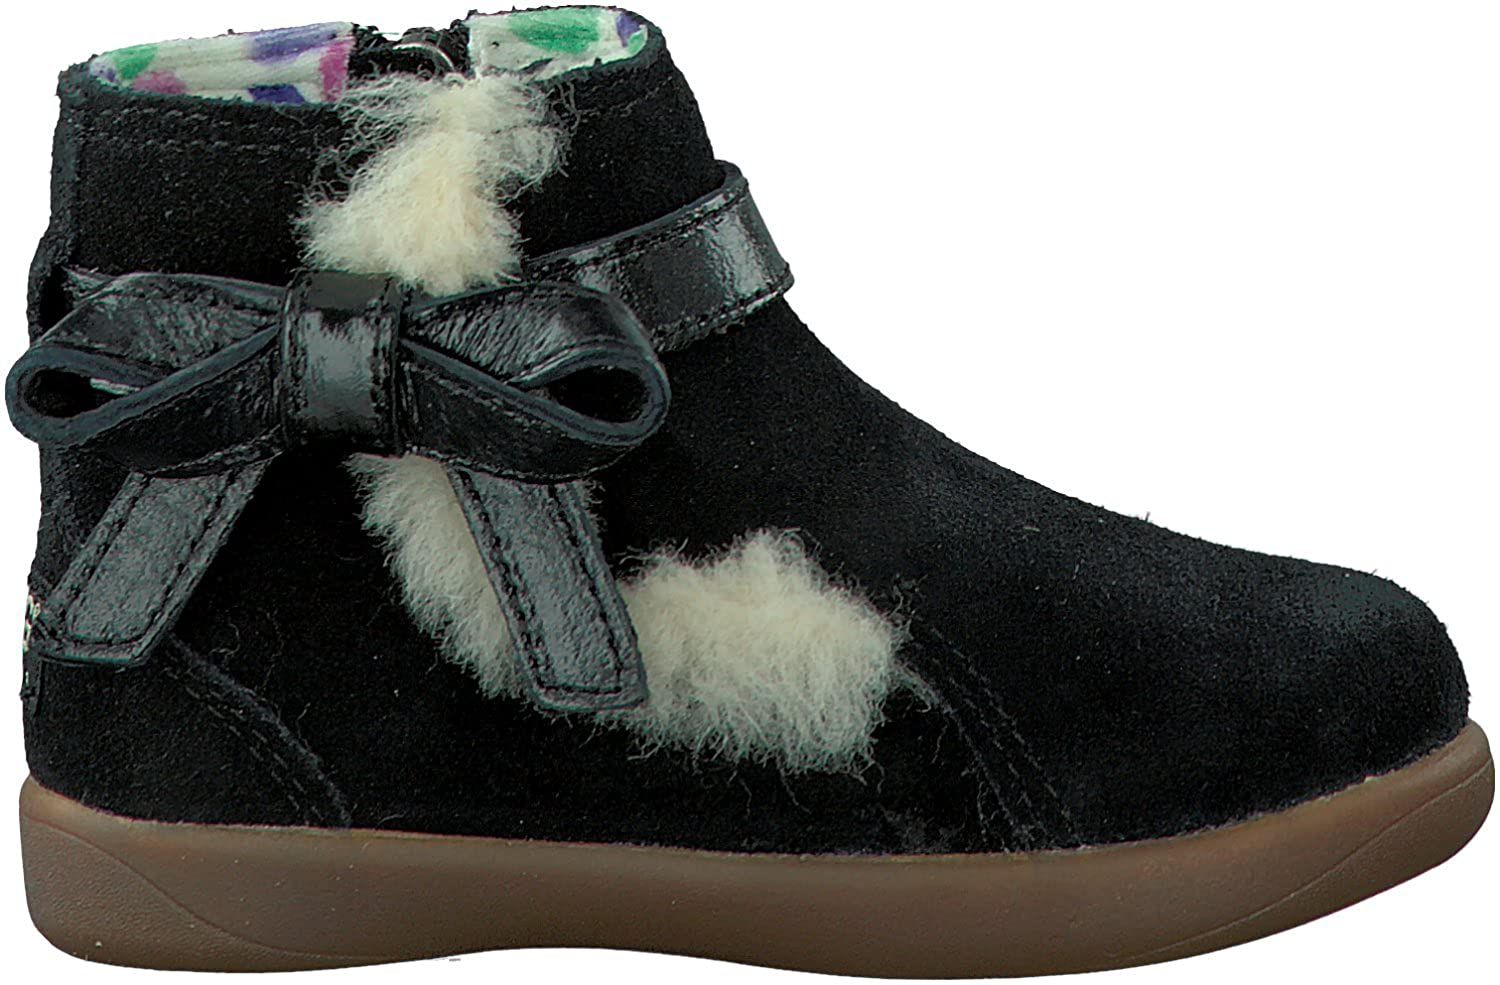 b632e5a4fe2 UGG Australia Boots Libbie - Black, 26: Amazon.co.uk: Shoes & Bags